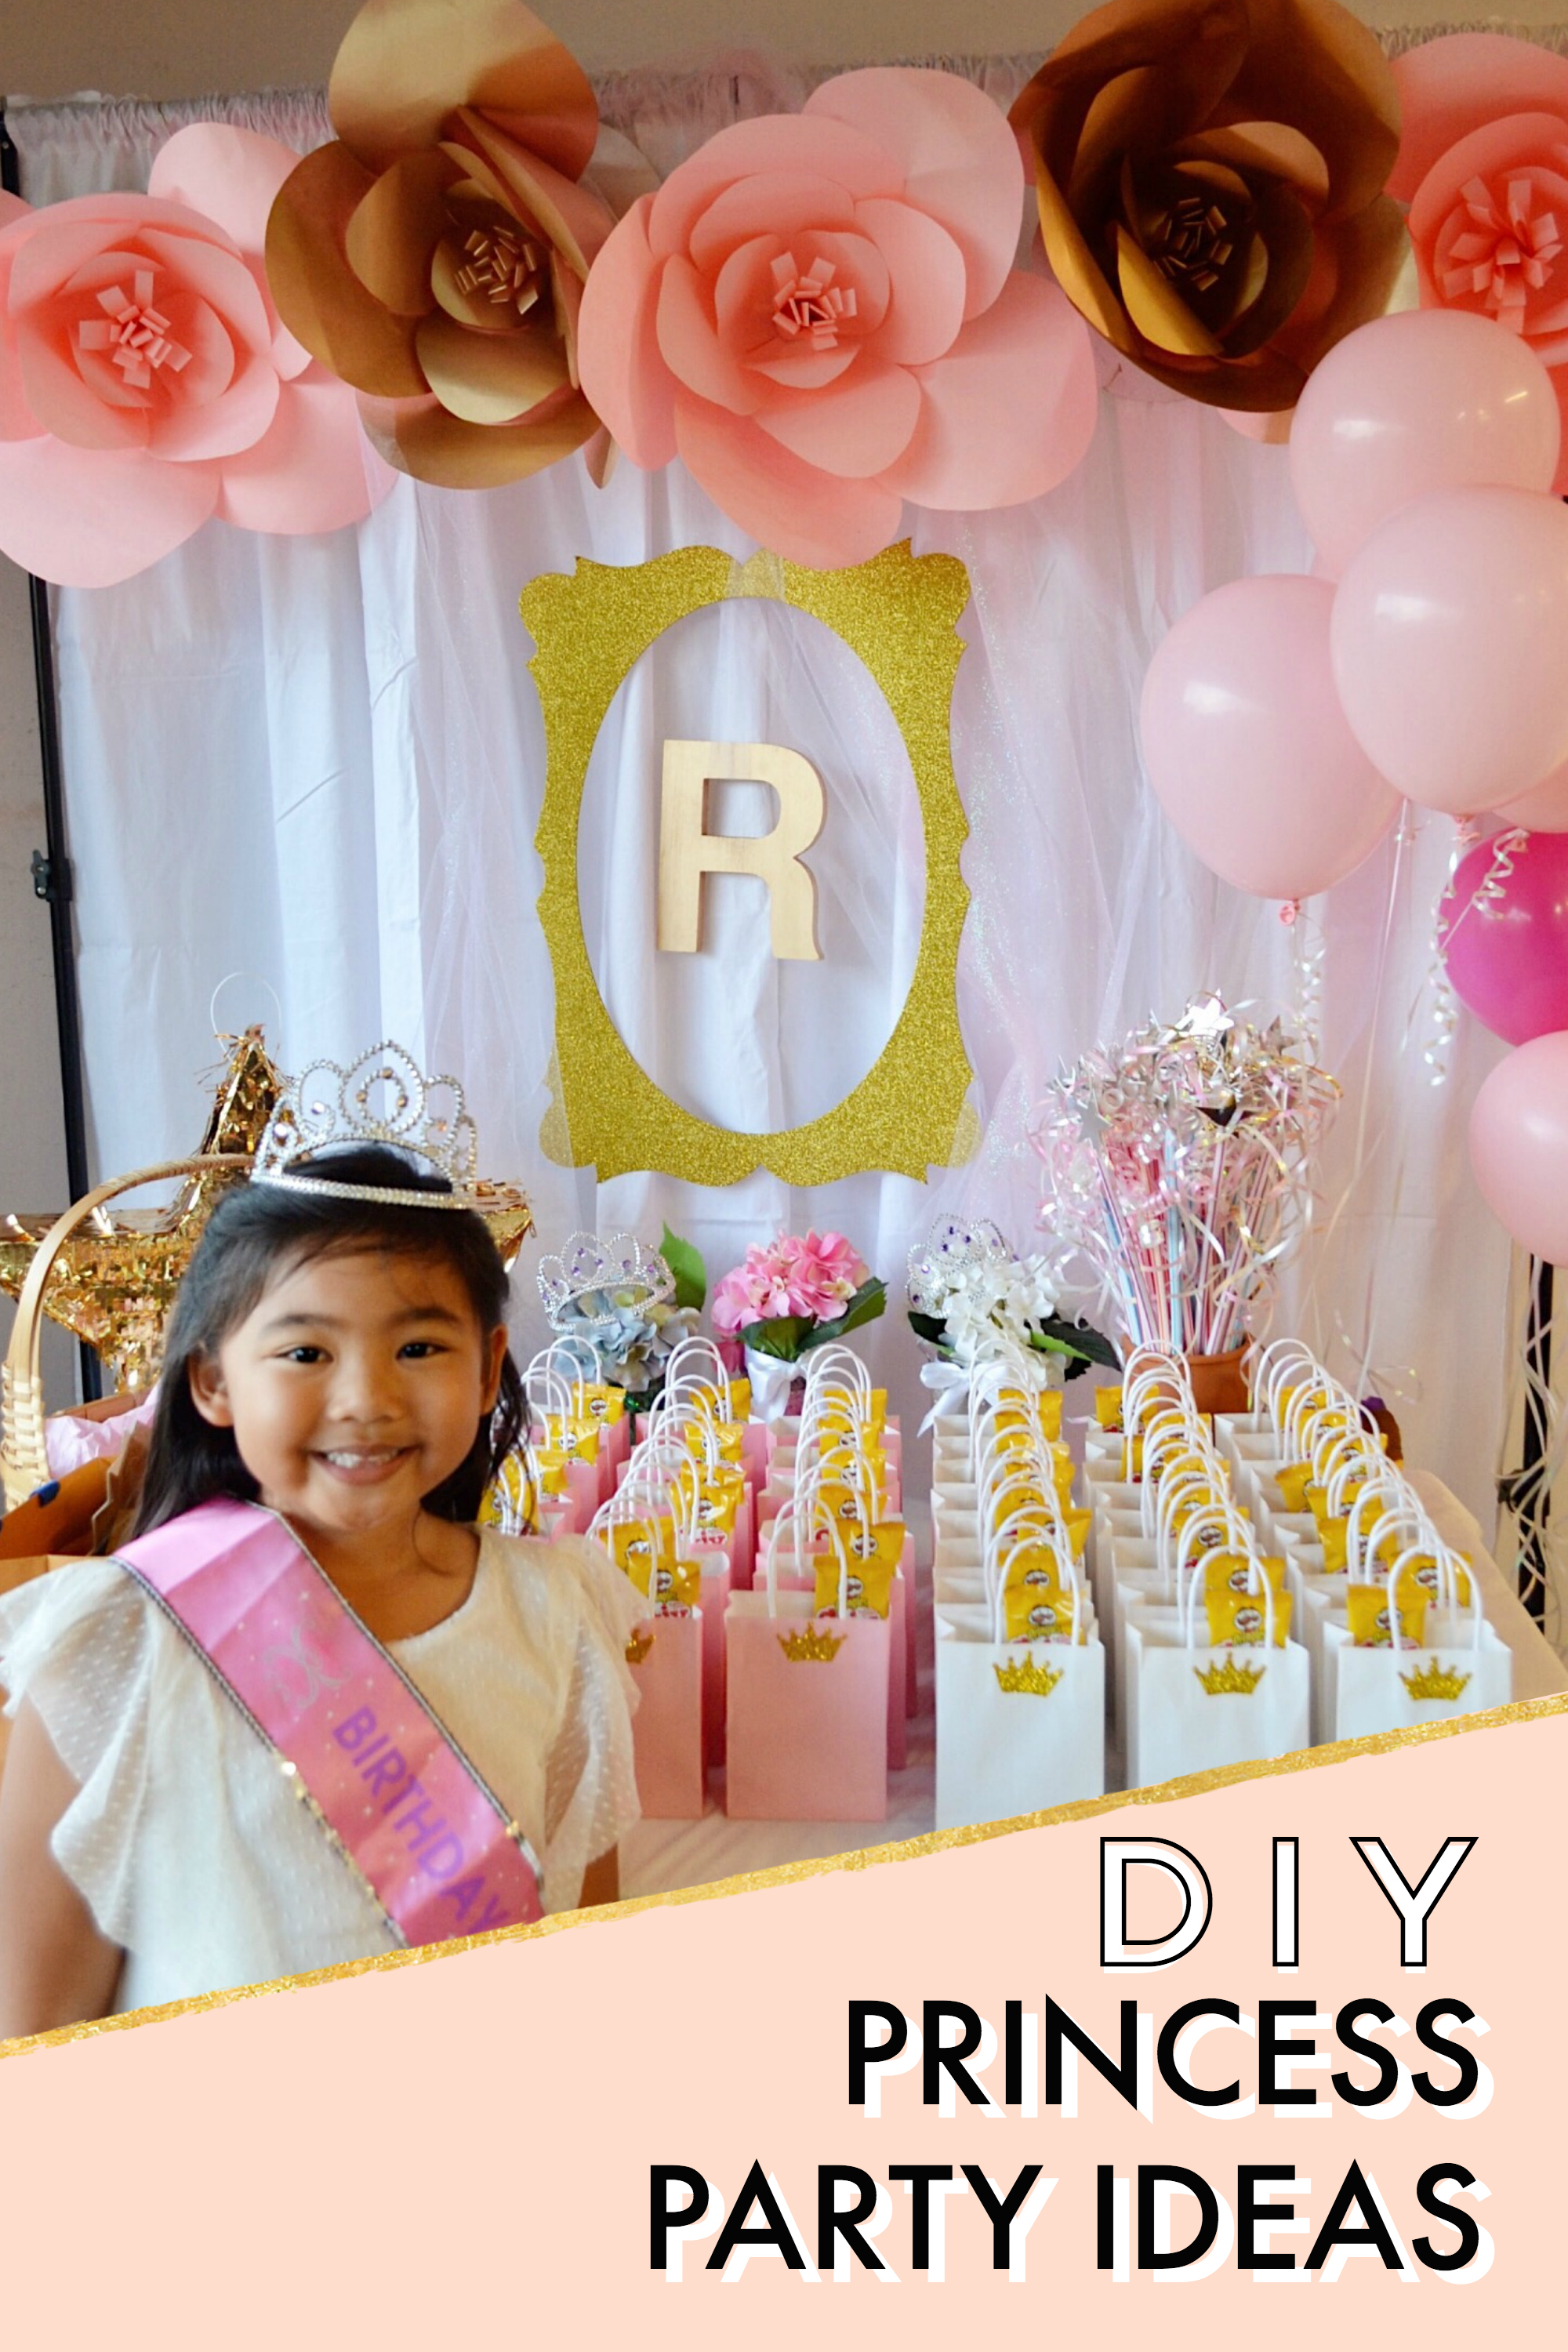 DIY Princess Backdrop